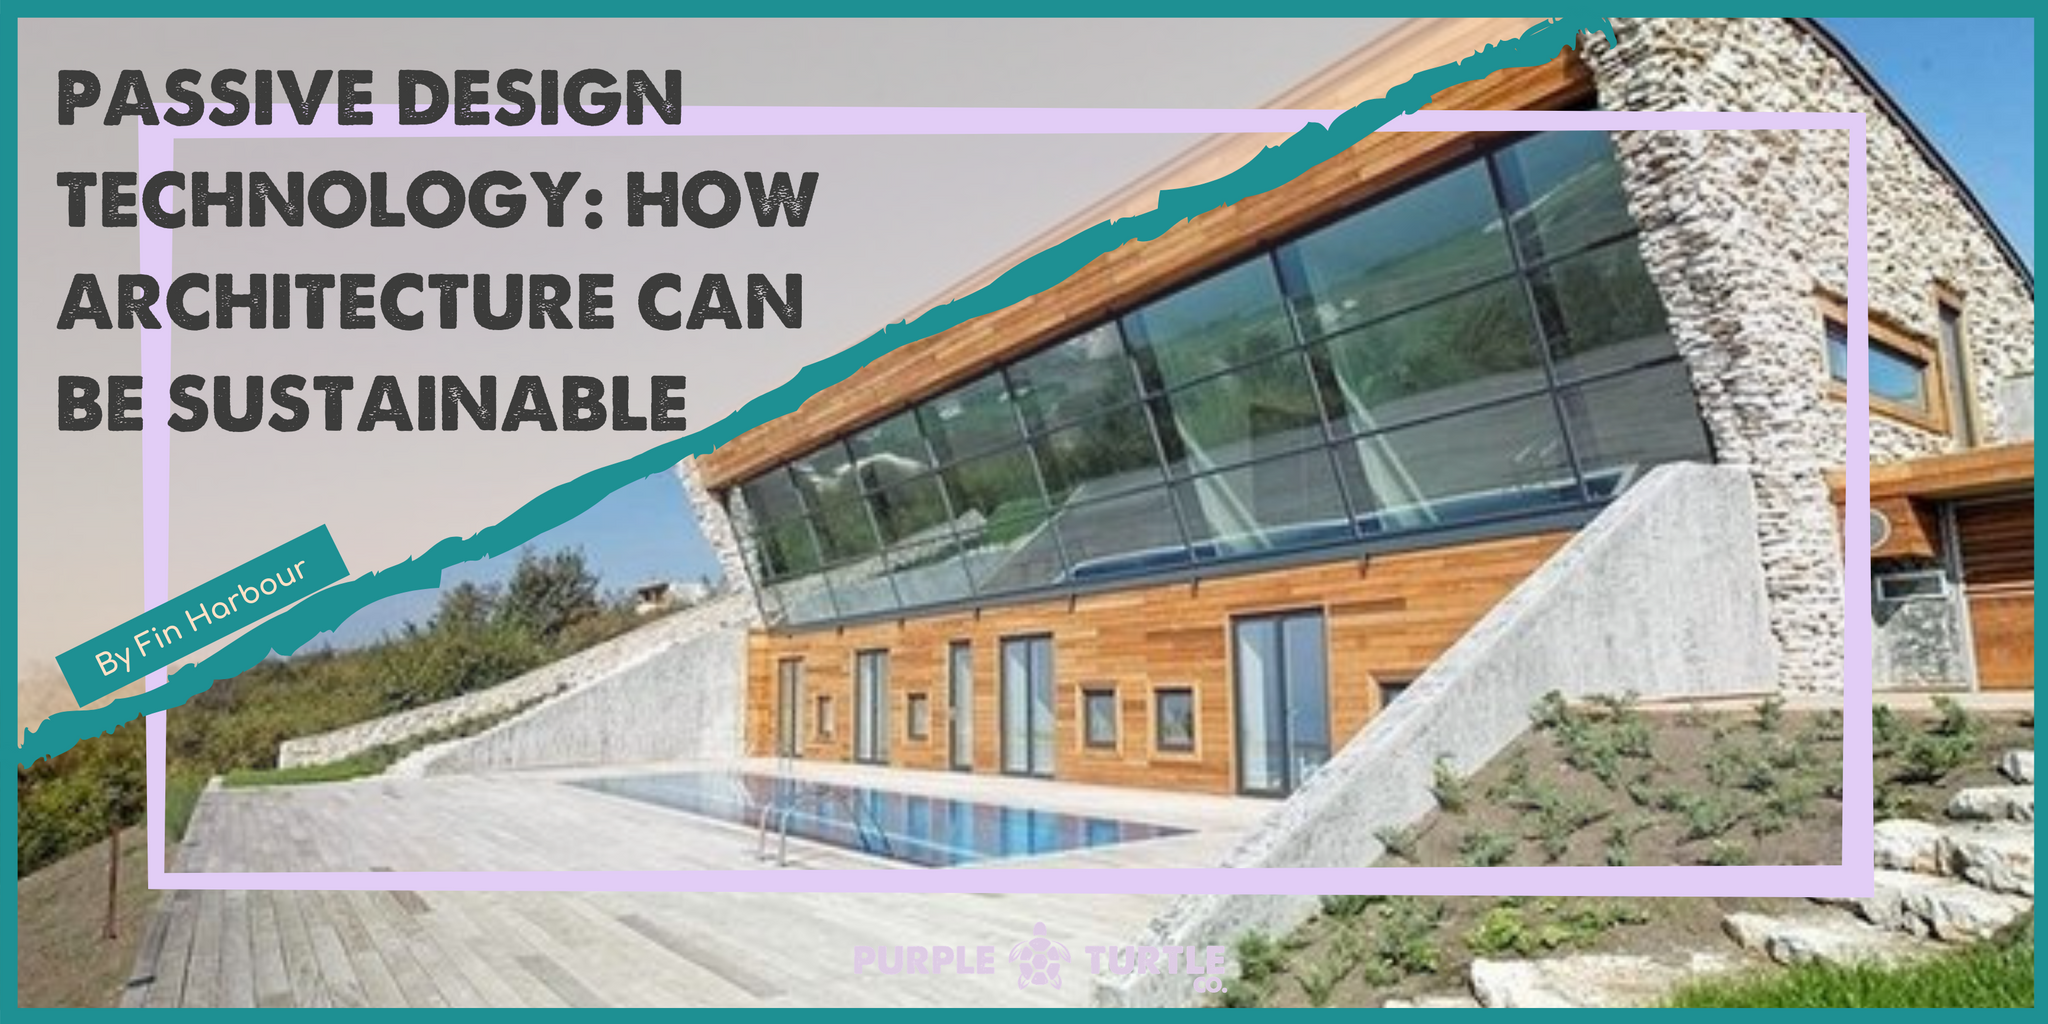 Passive Design Technology: How architecture can be sustainable